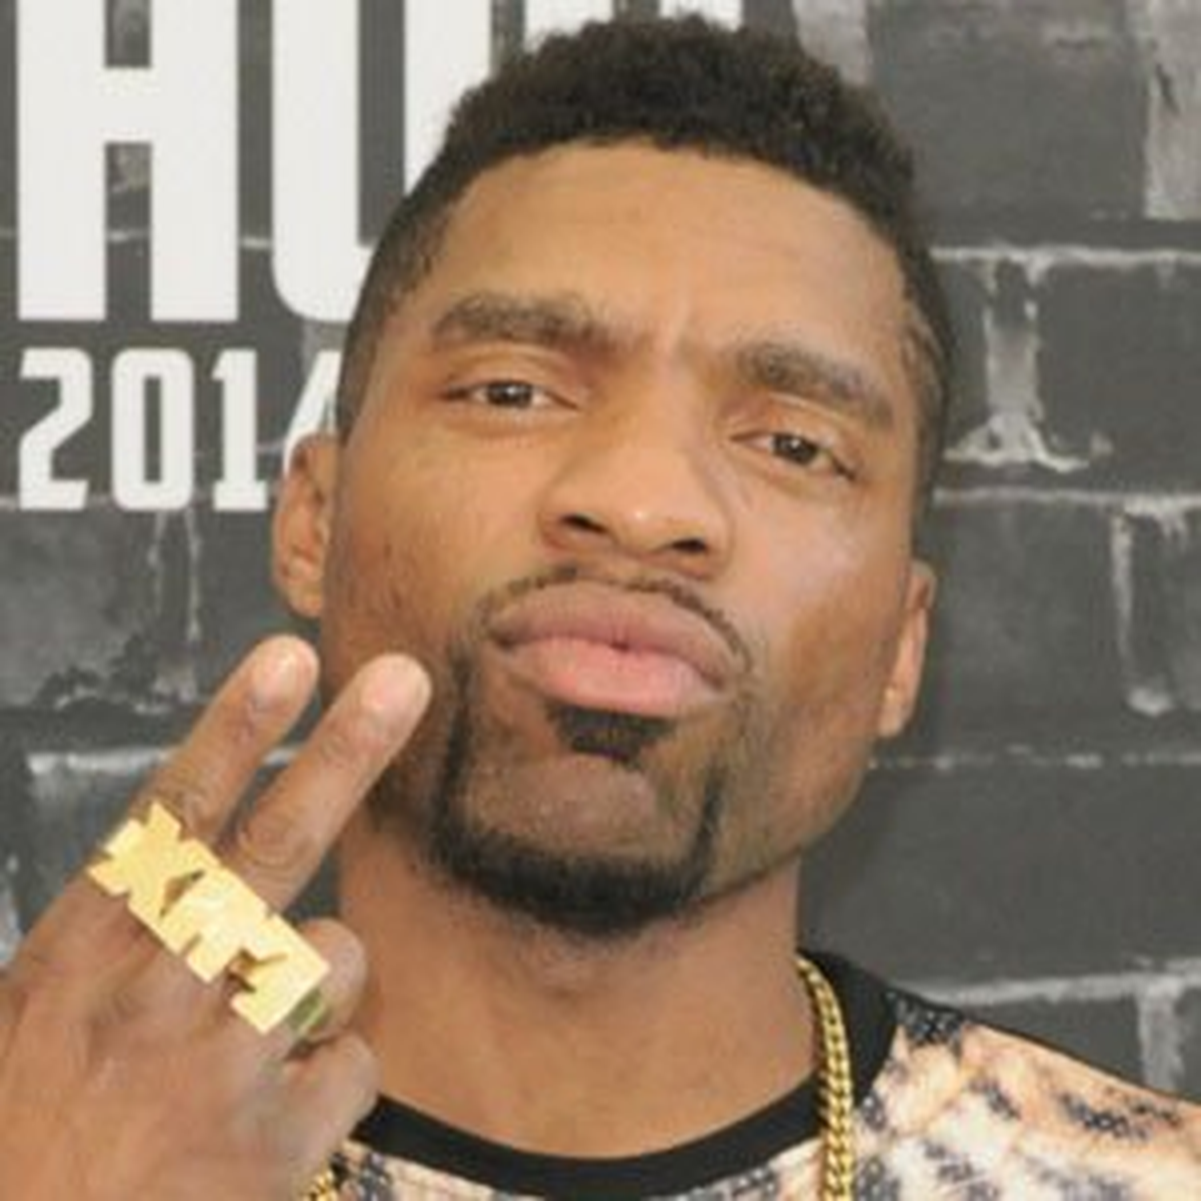 Loaded Lux wiki, Loaded Lux bio, Loaded Lux news